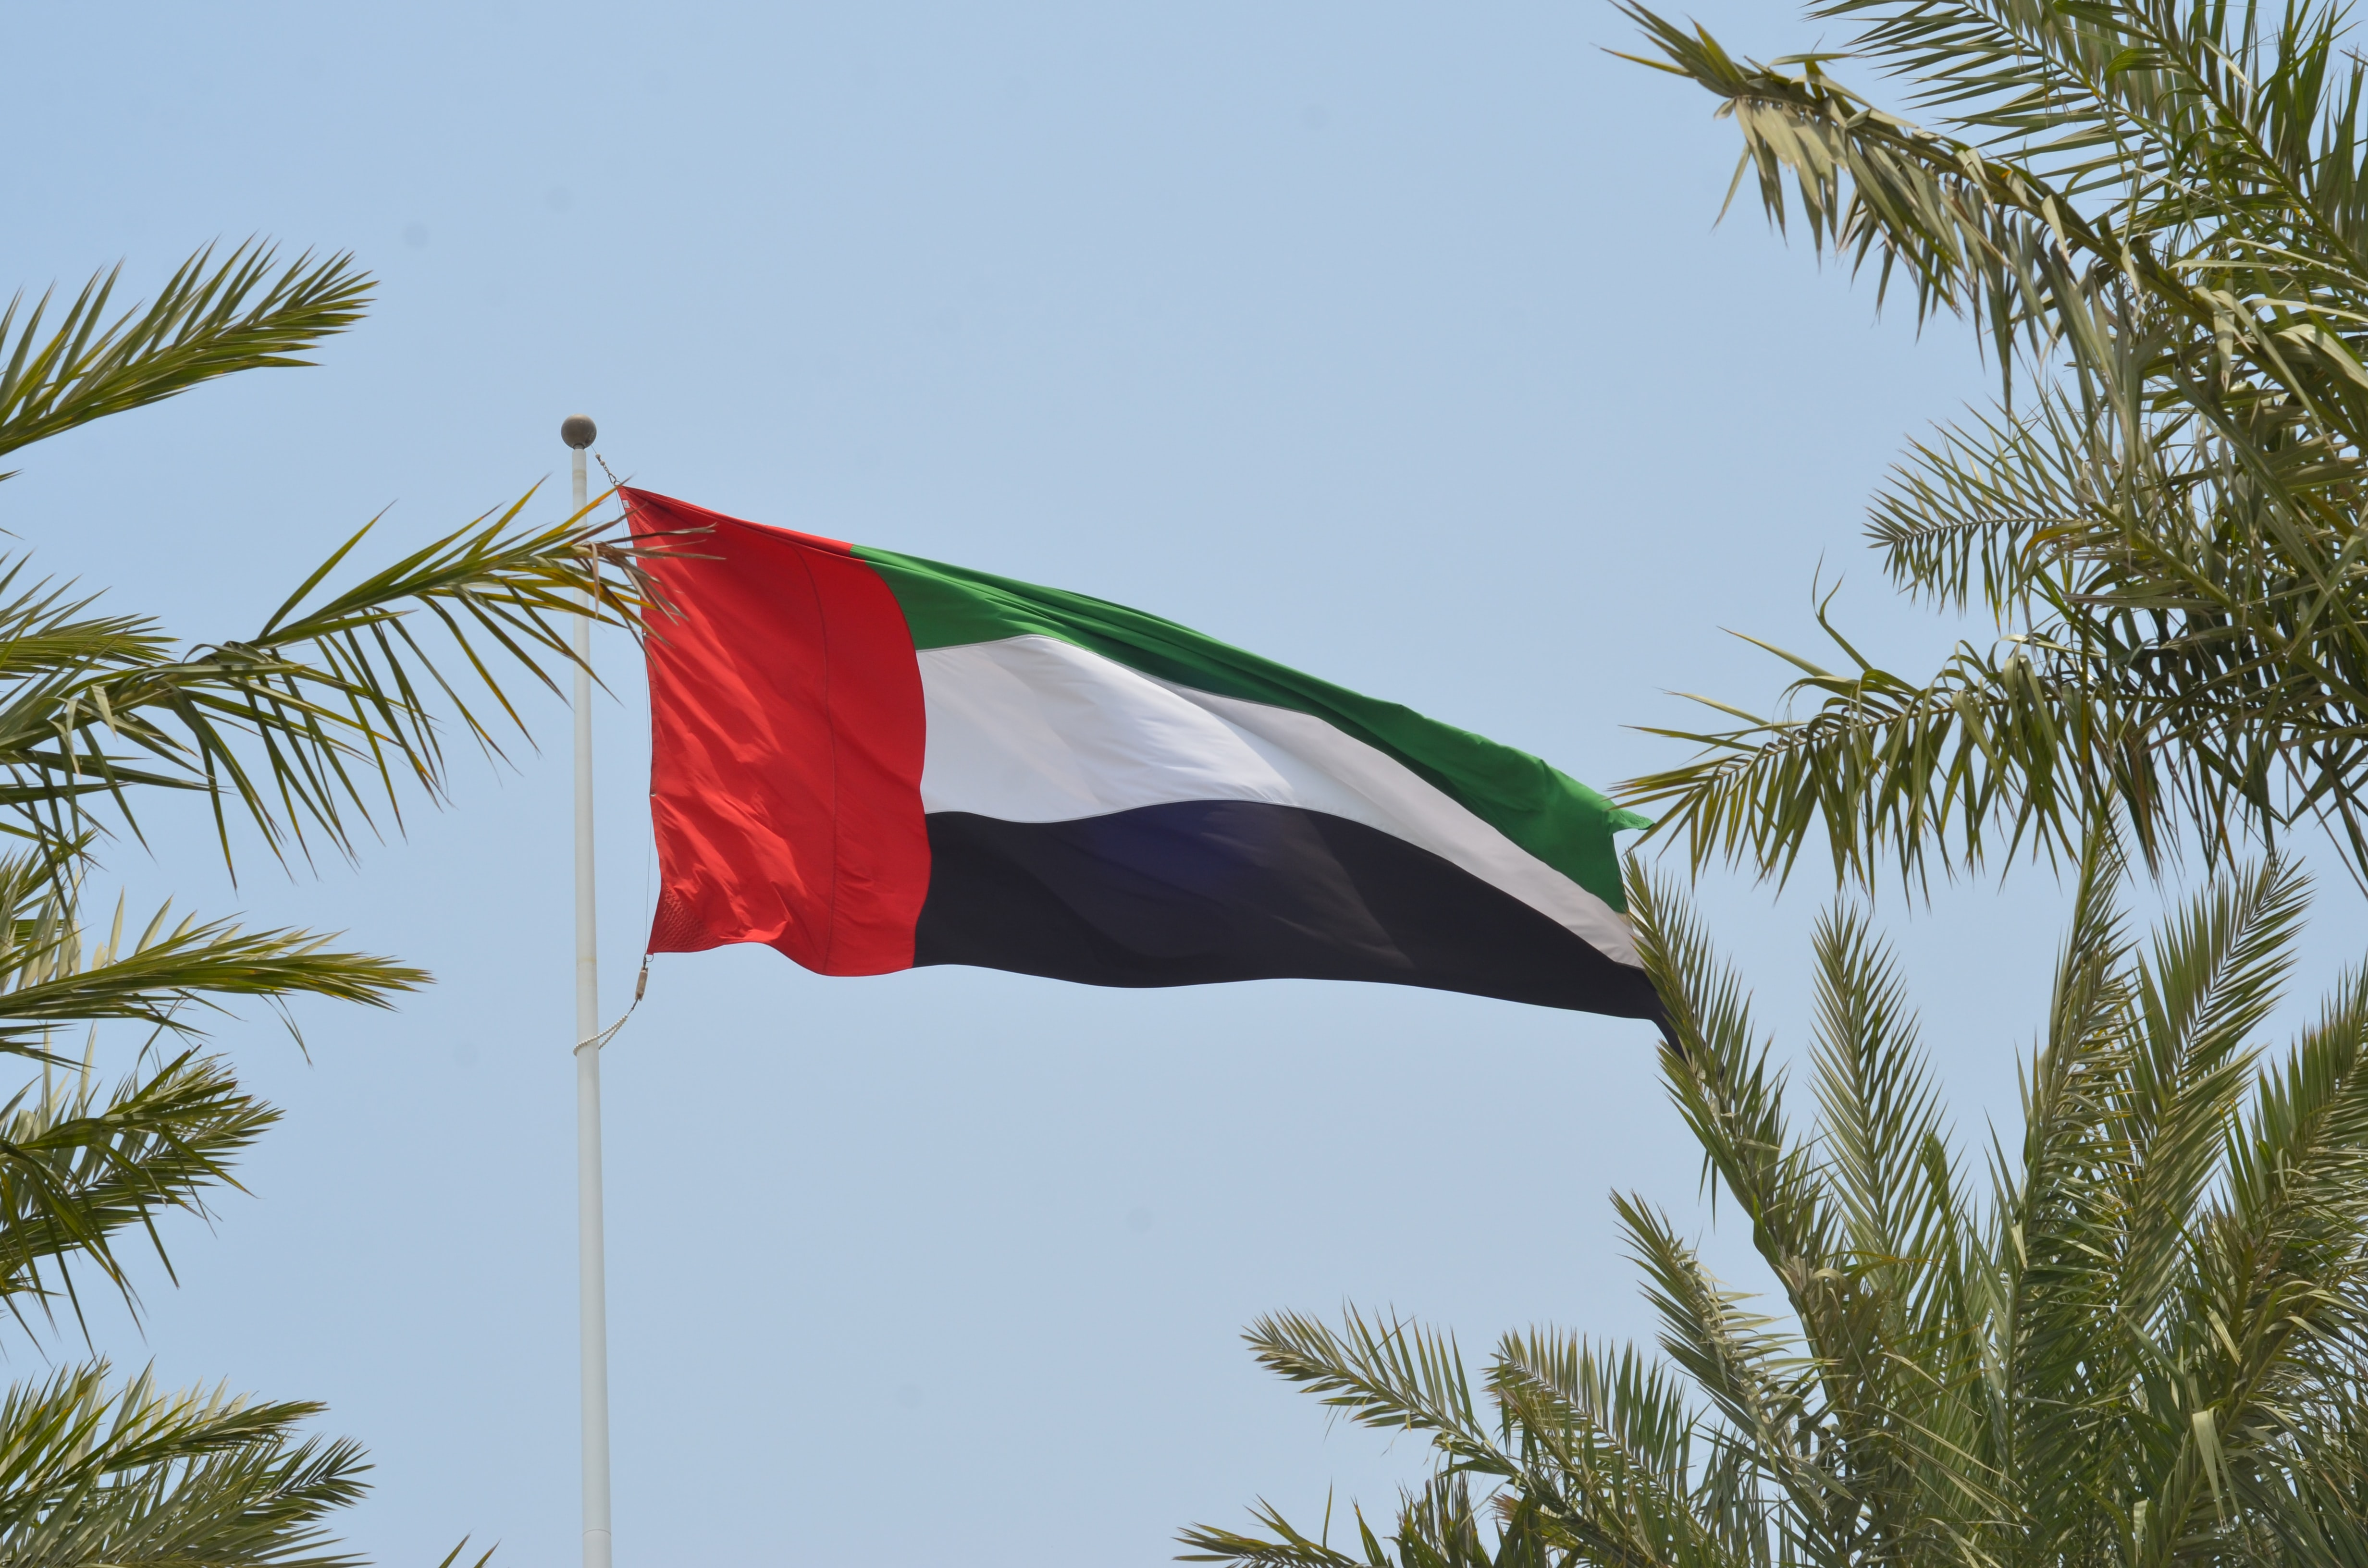 Investment in the UAE: how to launch a start-up company?